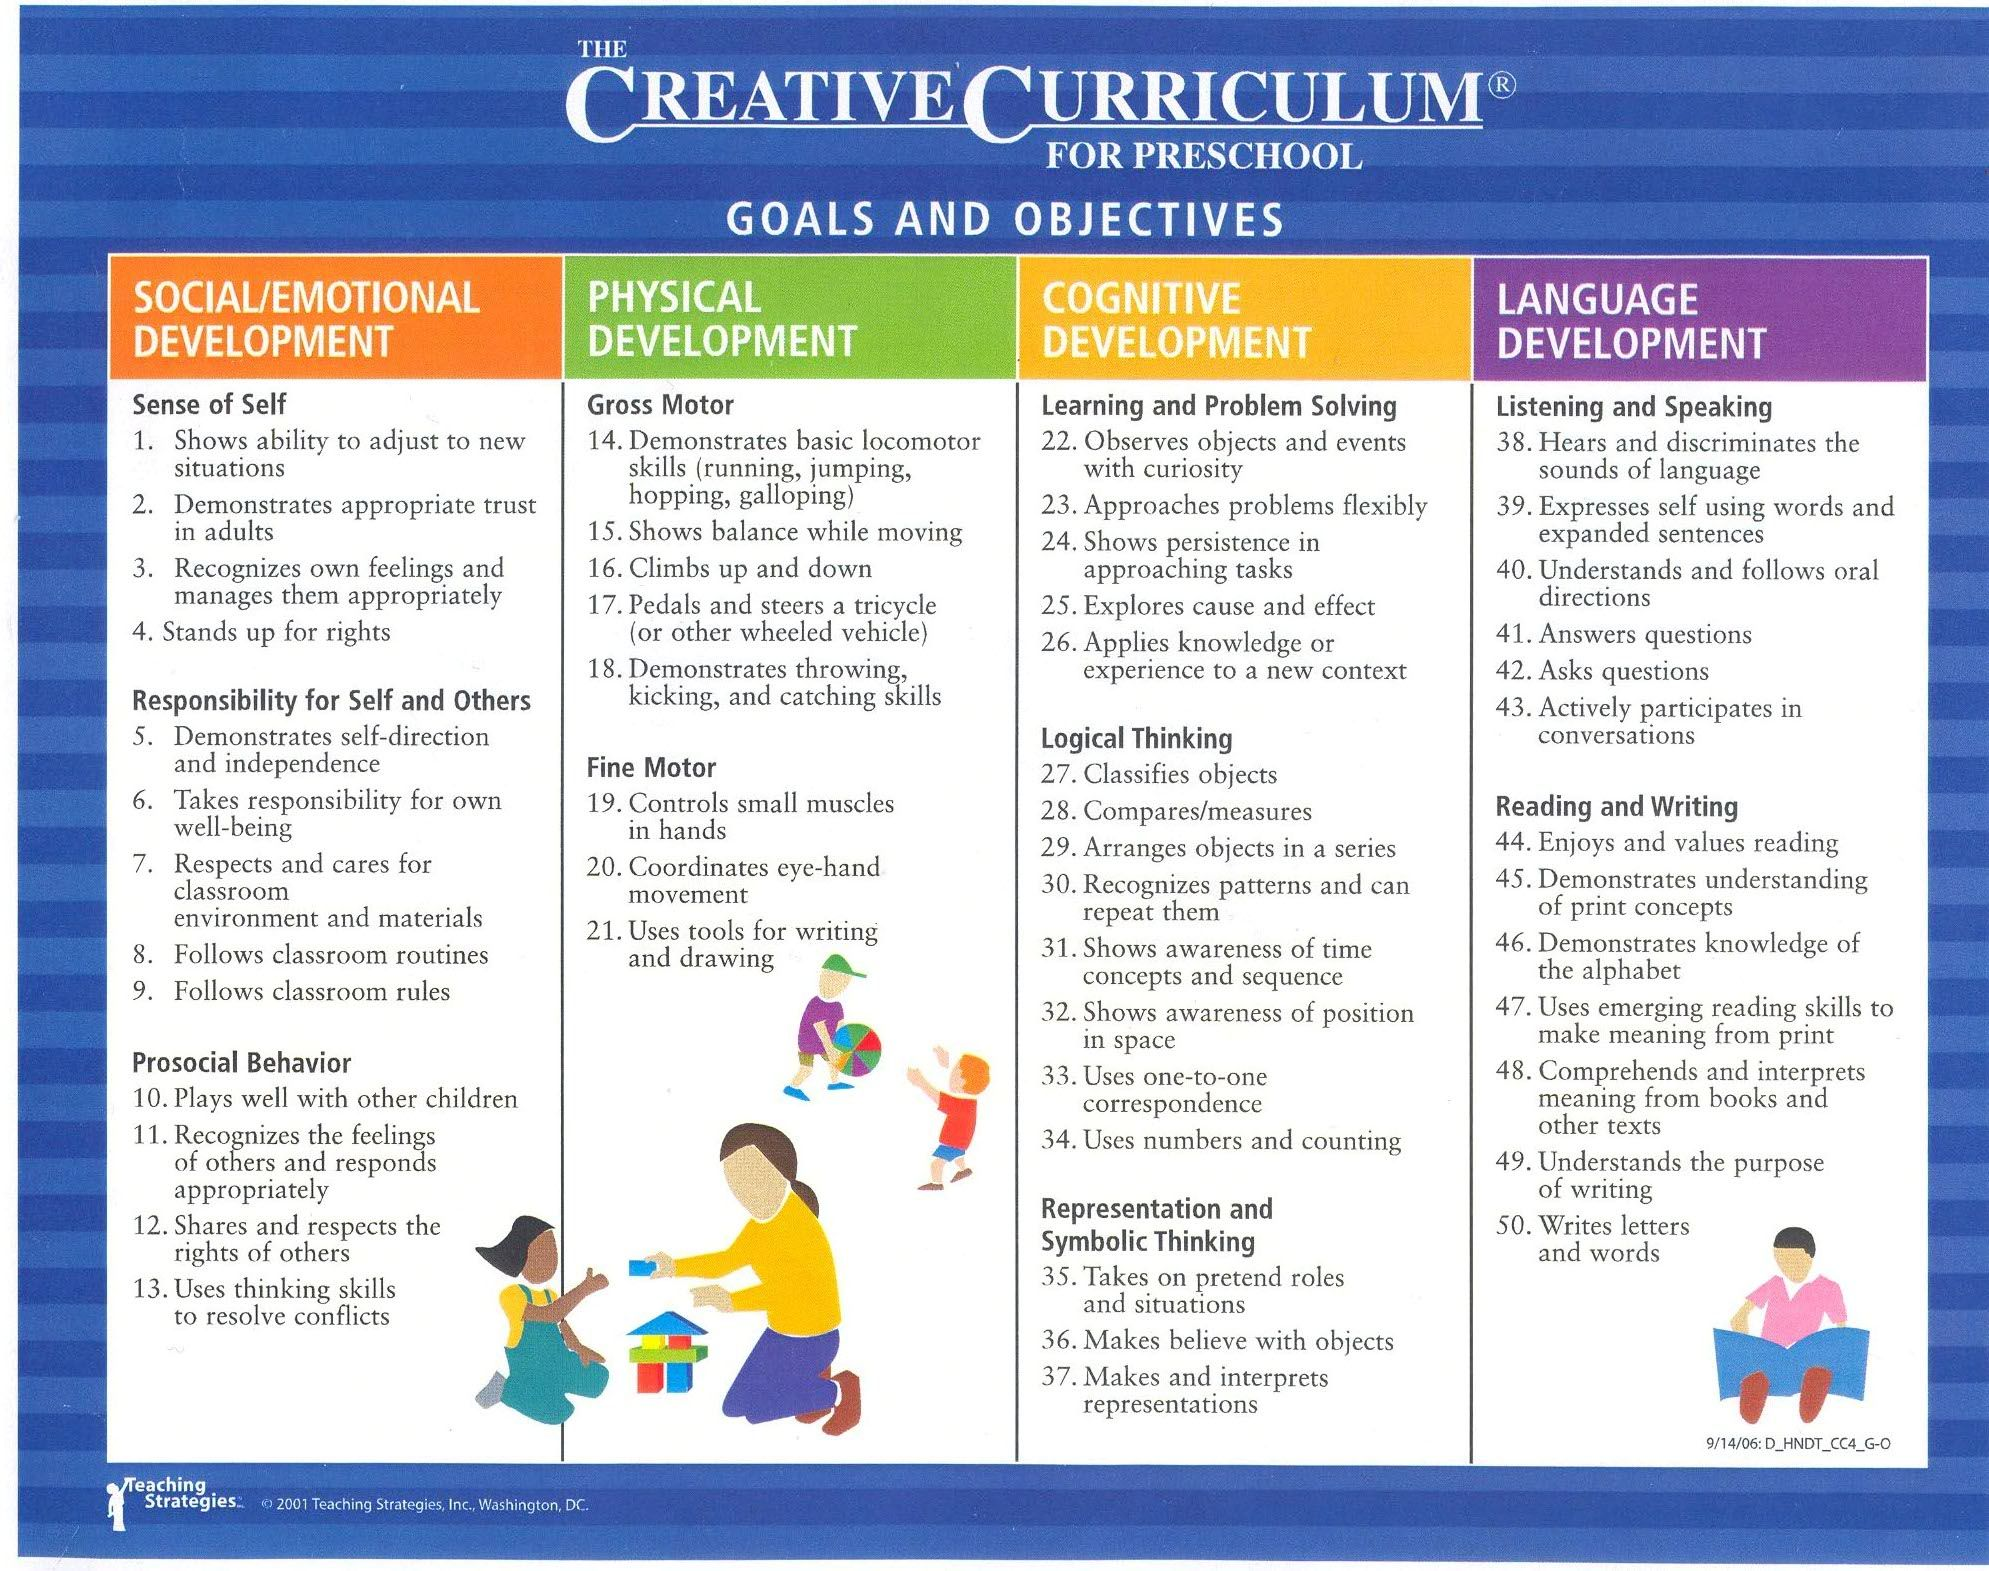 How to Develop Creativity in Preschool How to Develop Creativity in Preschool new photo